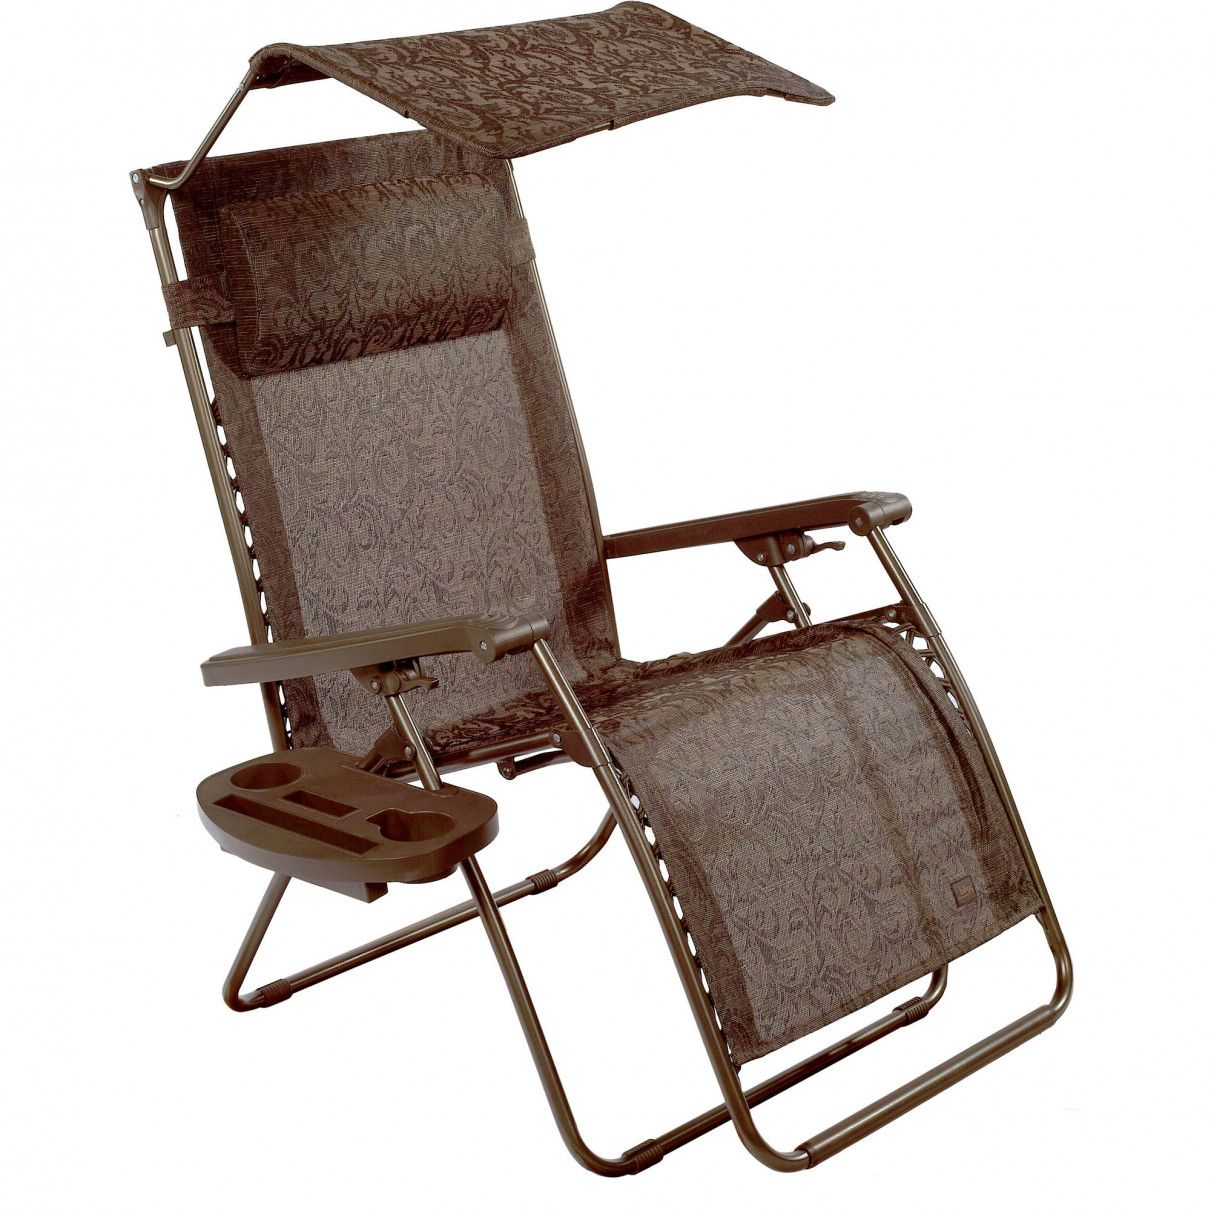 Bliss Hammocks Zero Gravity Chair Home Office Furniture Ideas